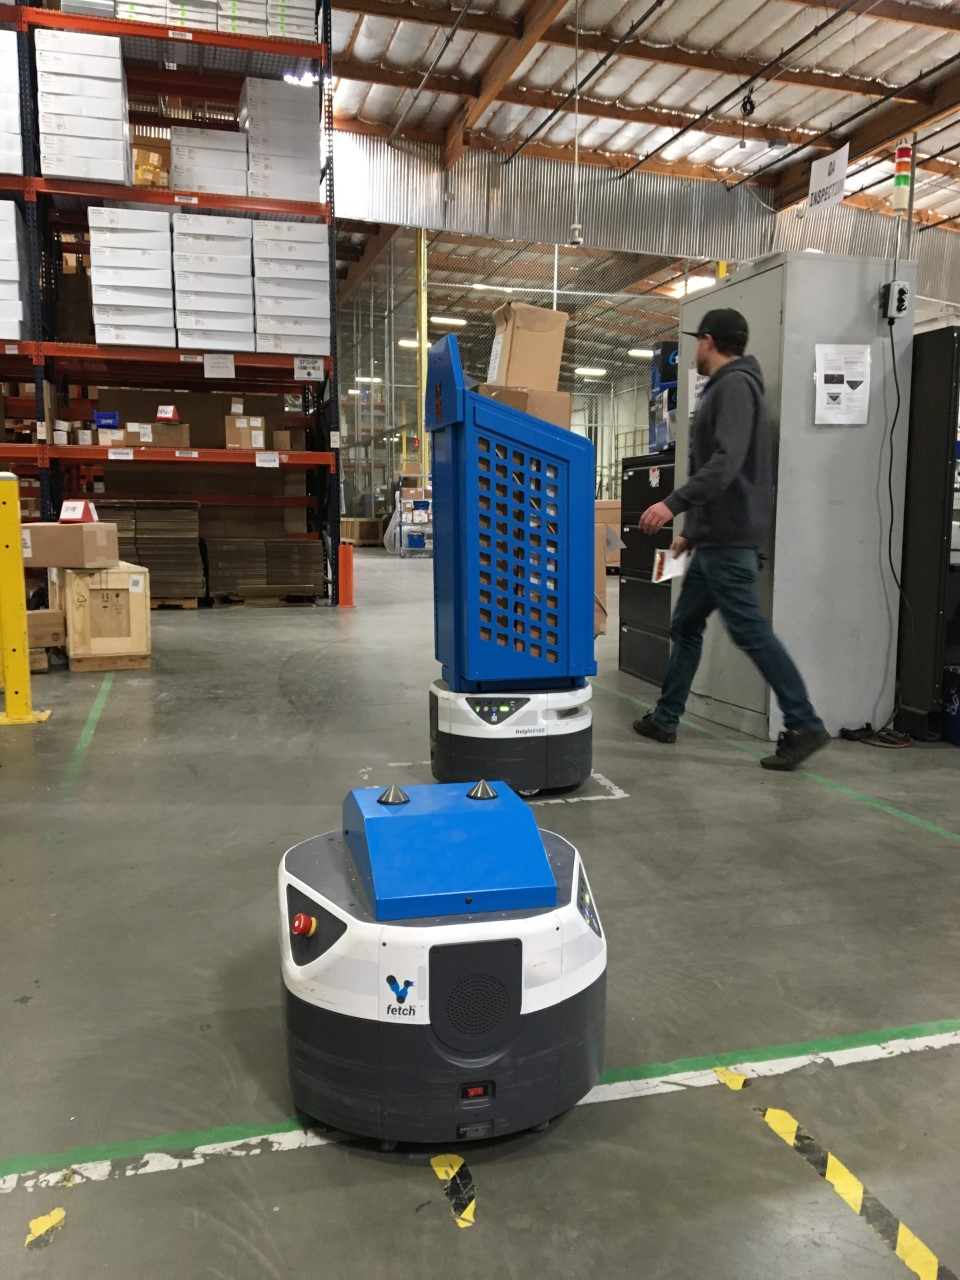 RK Logistics Doubles Down on Fetch Robotics in the Warehouse